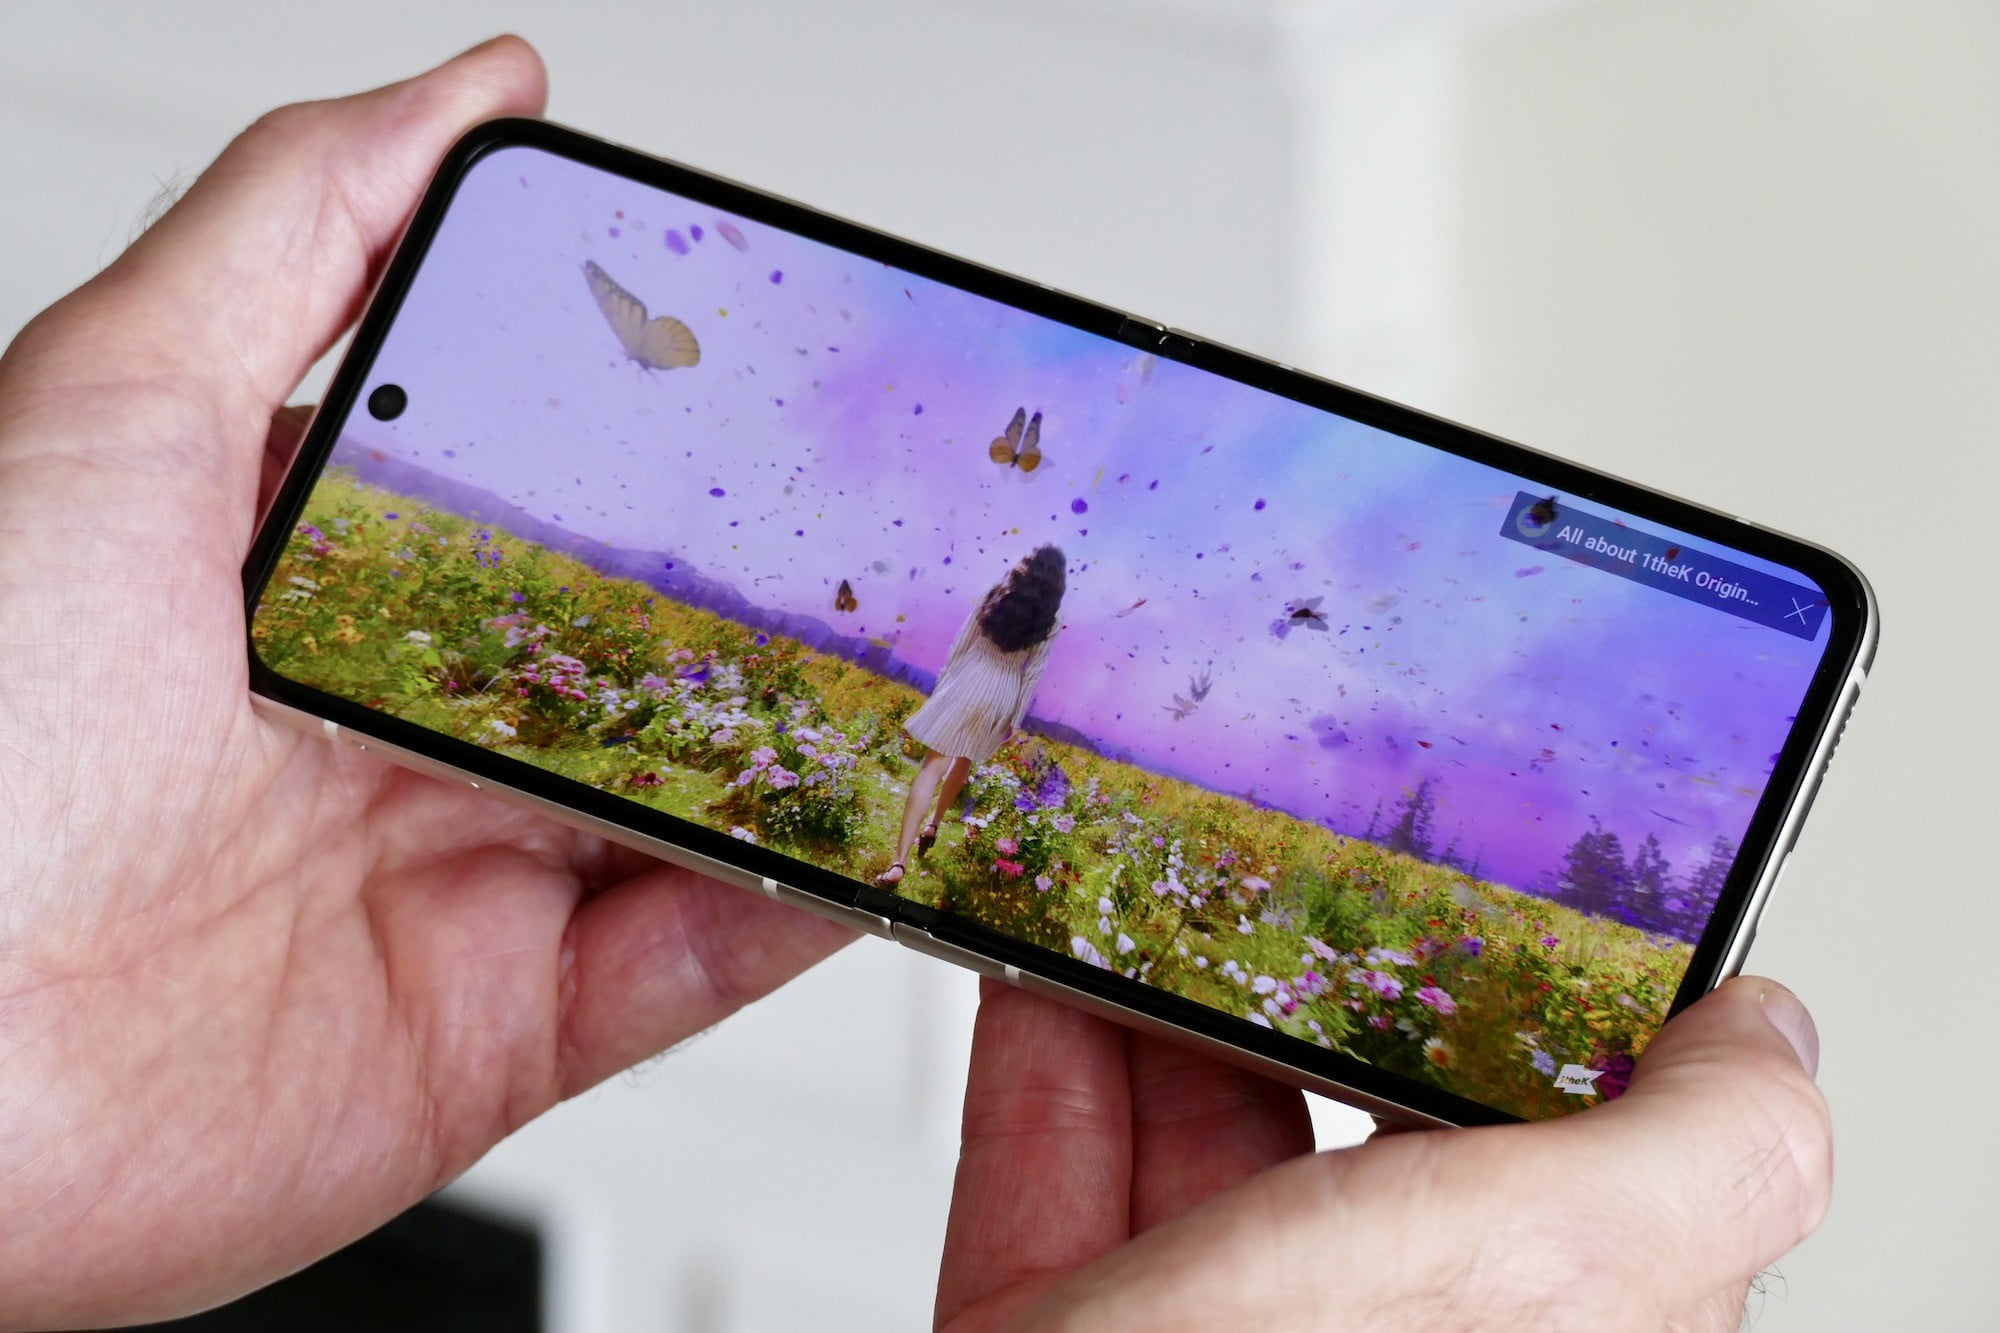 Video playing on the Galaxy Z Flip 3.